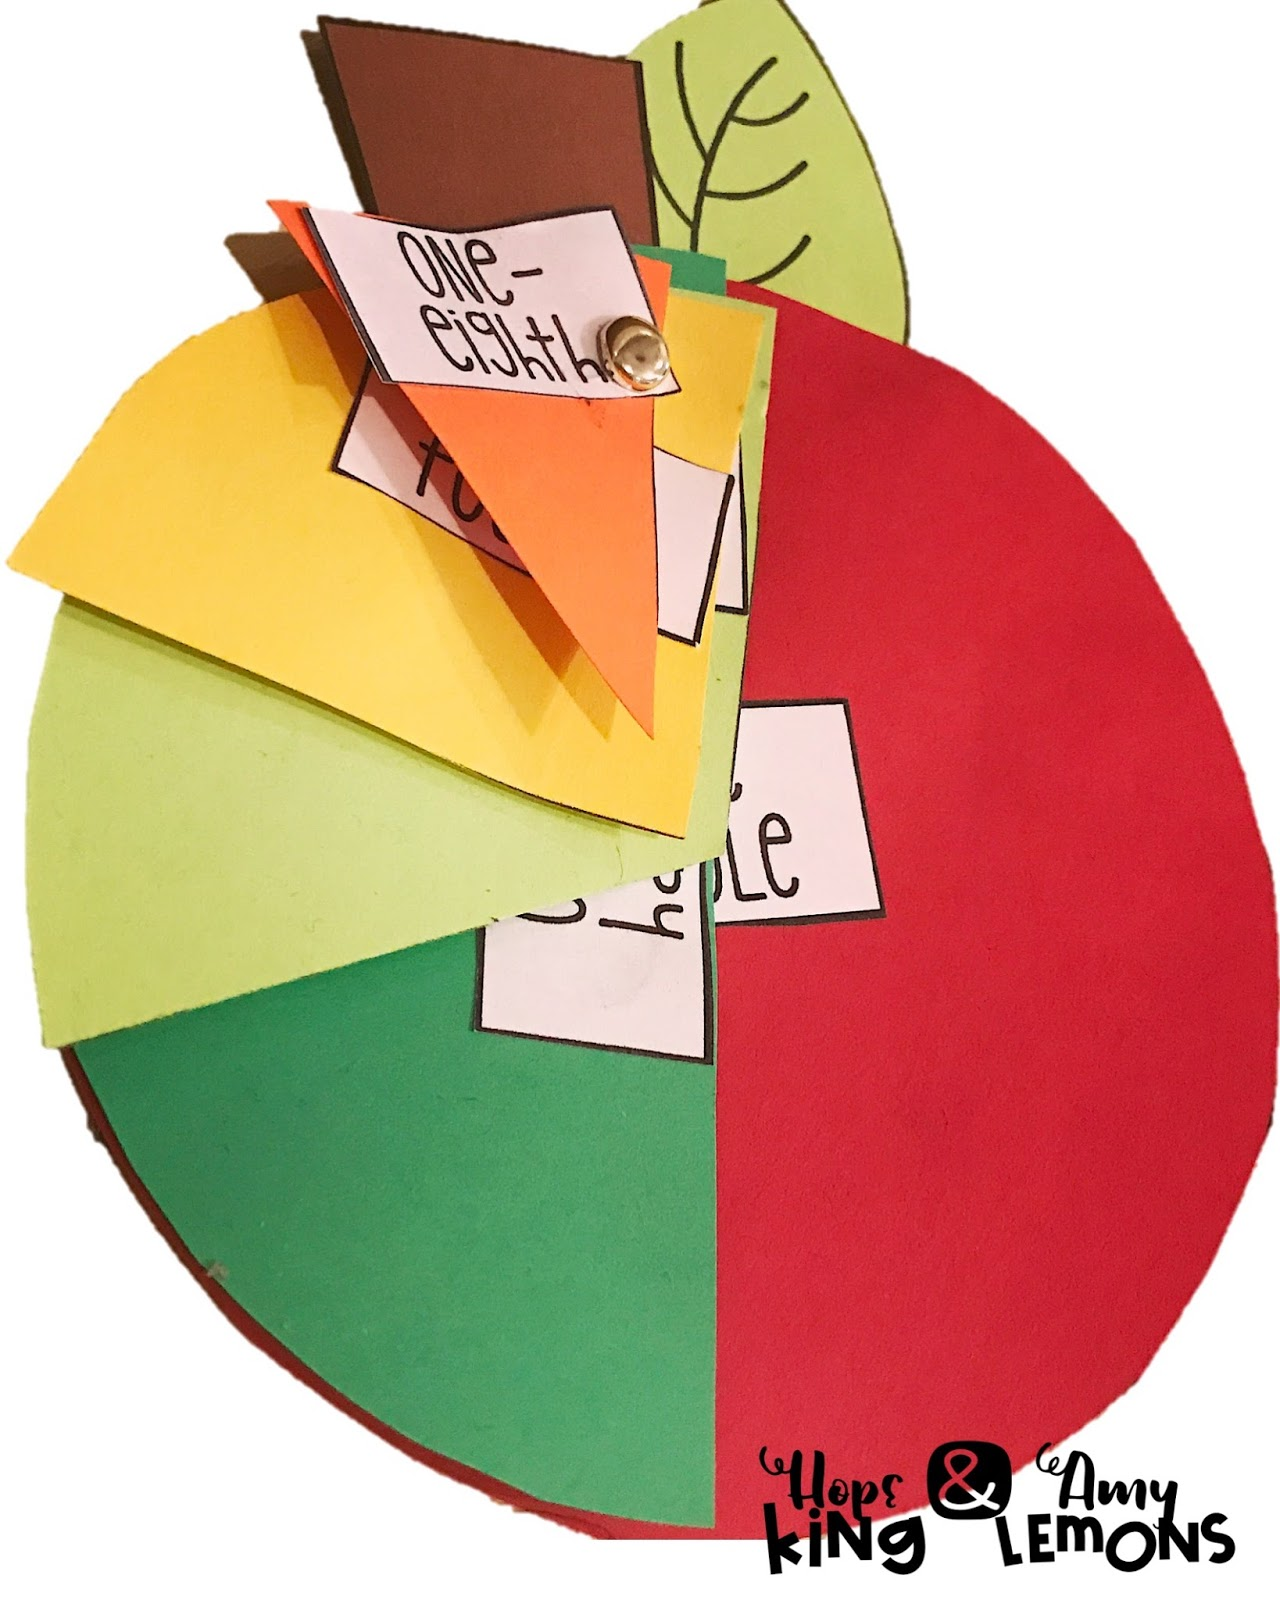 One Of My Favorite Things About Fractions Is There Are So Many Fun Ways To Create  Fraction Models You Can Make Pizzas, Ice Cream Sundaes, Gumball Machines,